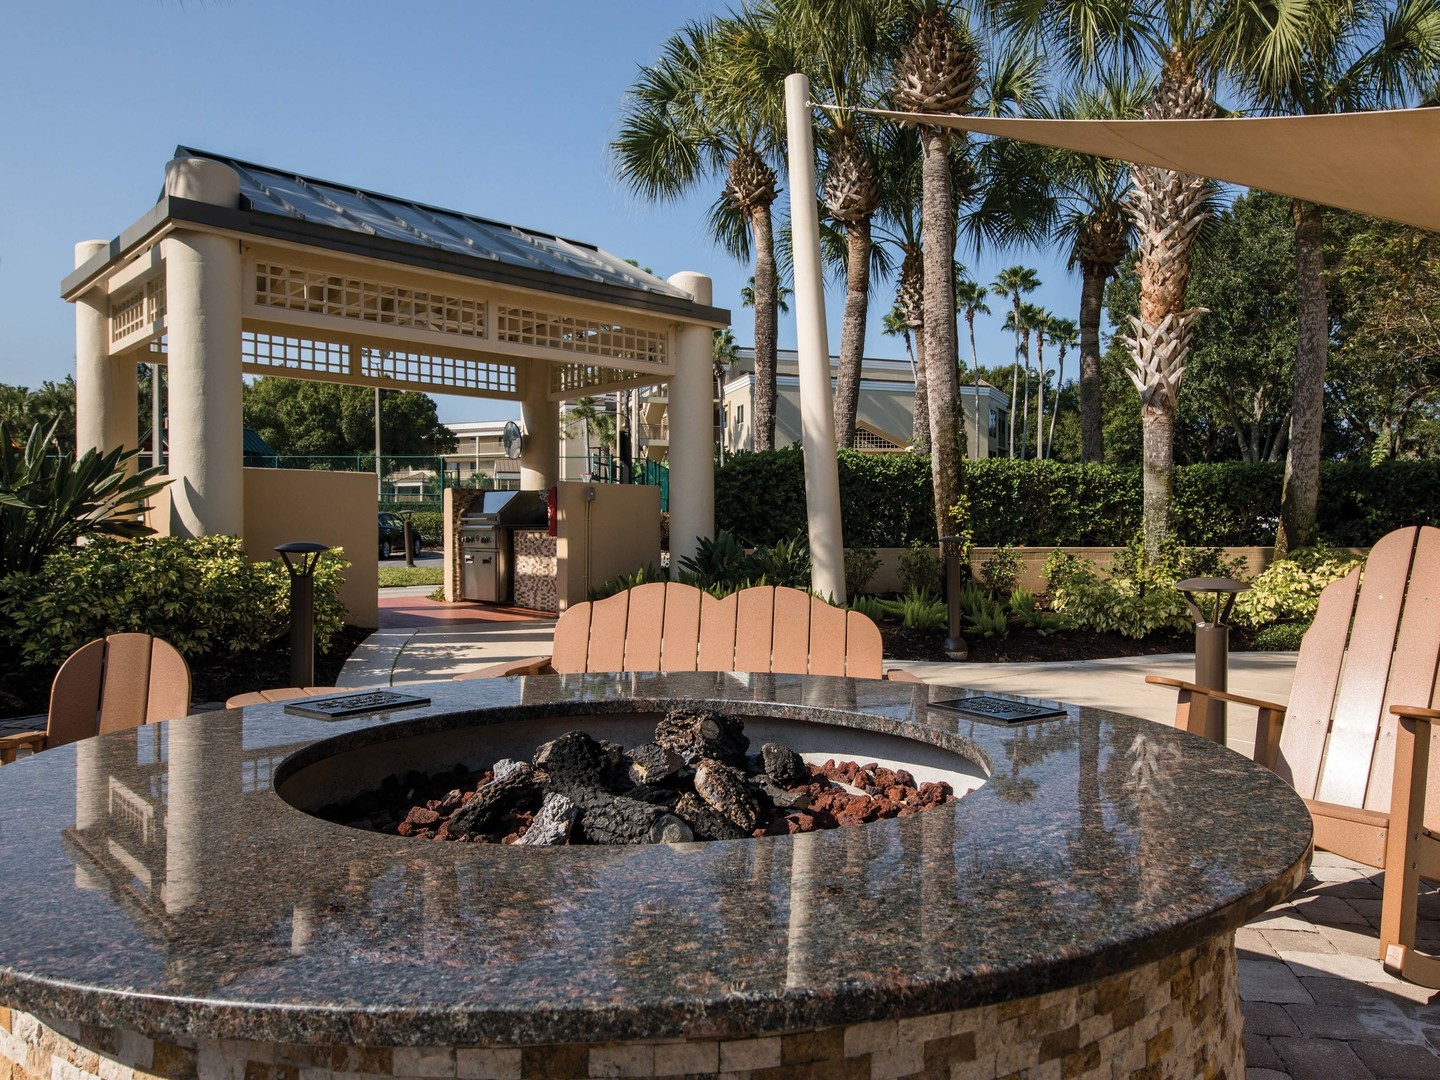 Marriott's Royal Palms Fire Pit. Marriott's Royal Palms is located in Orlando, Florida United States.